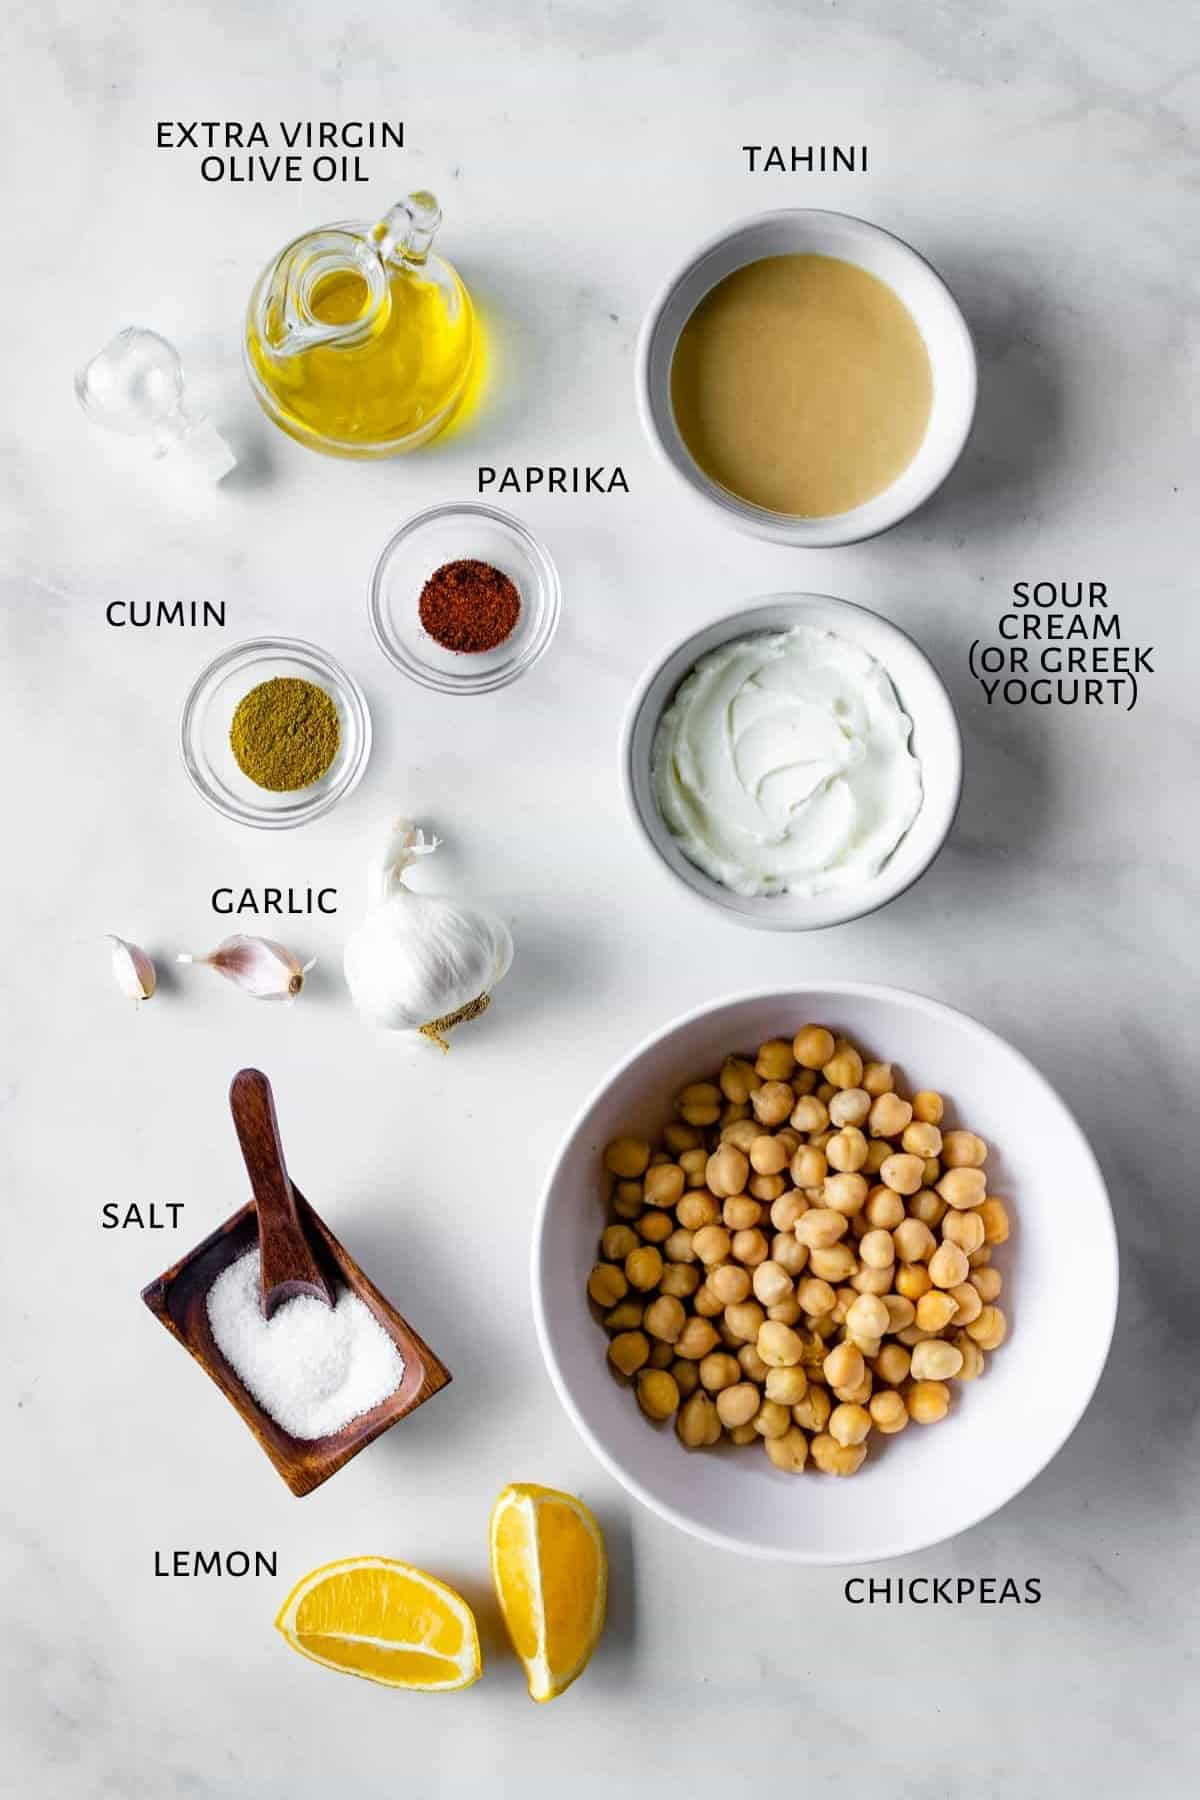 Ingredients for hummus are laid out on a counter.